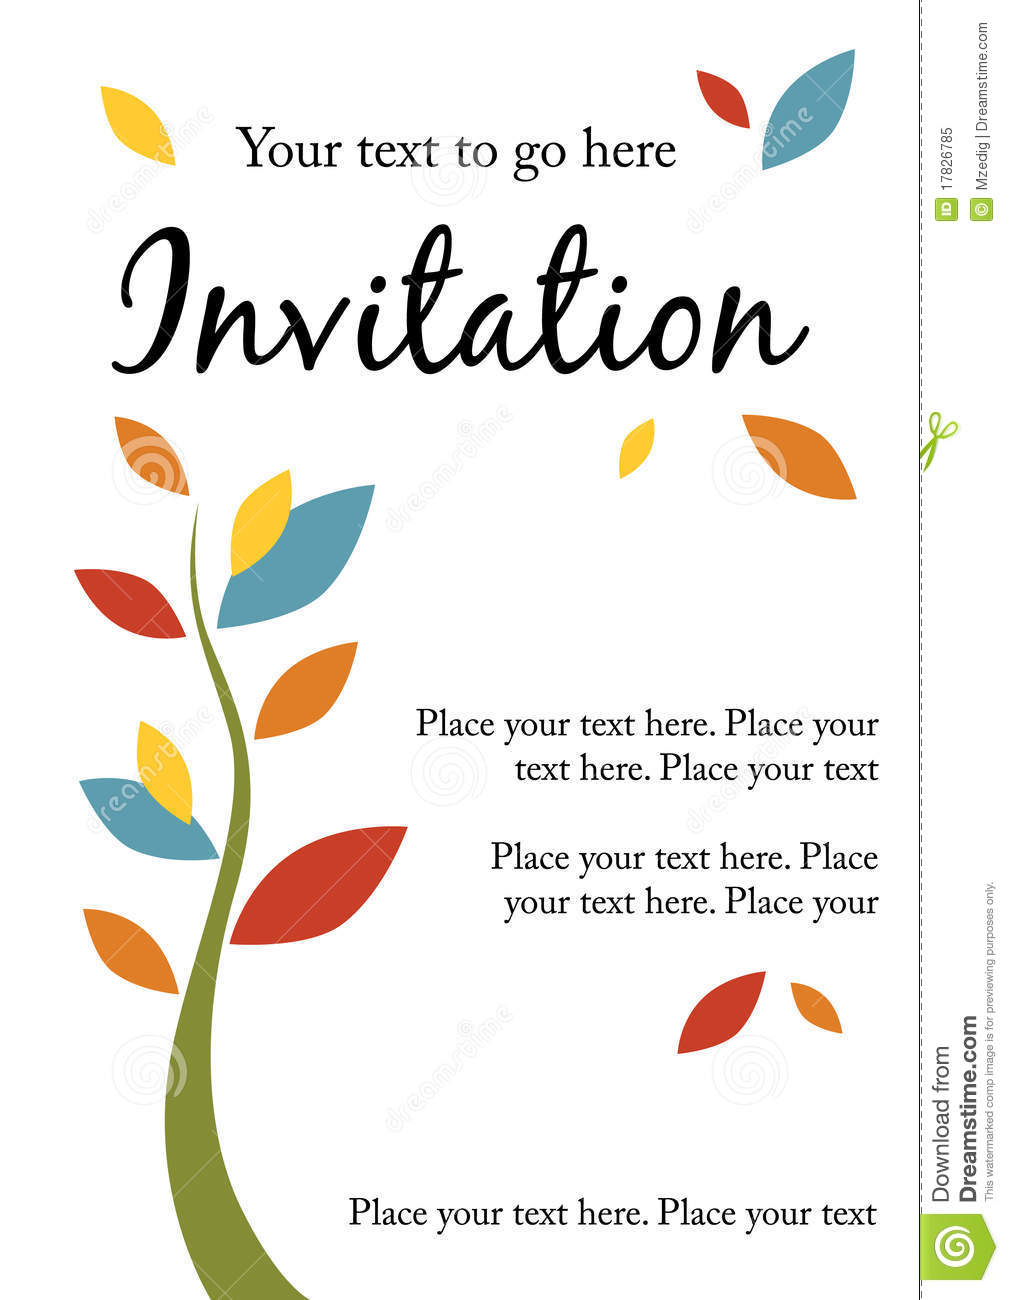 Volleyball Quotes Wallpapers Pretty Party Invitation Royalty Free Stock Photo Image